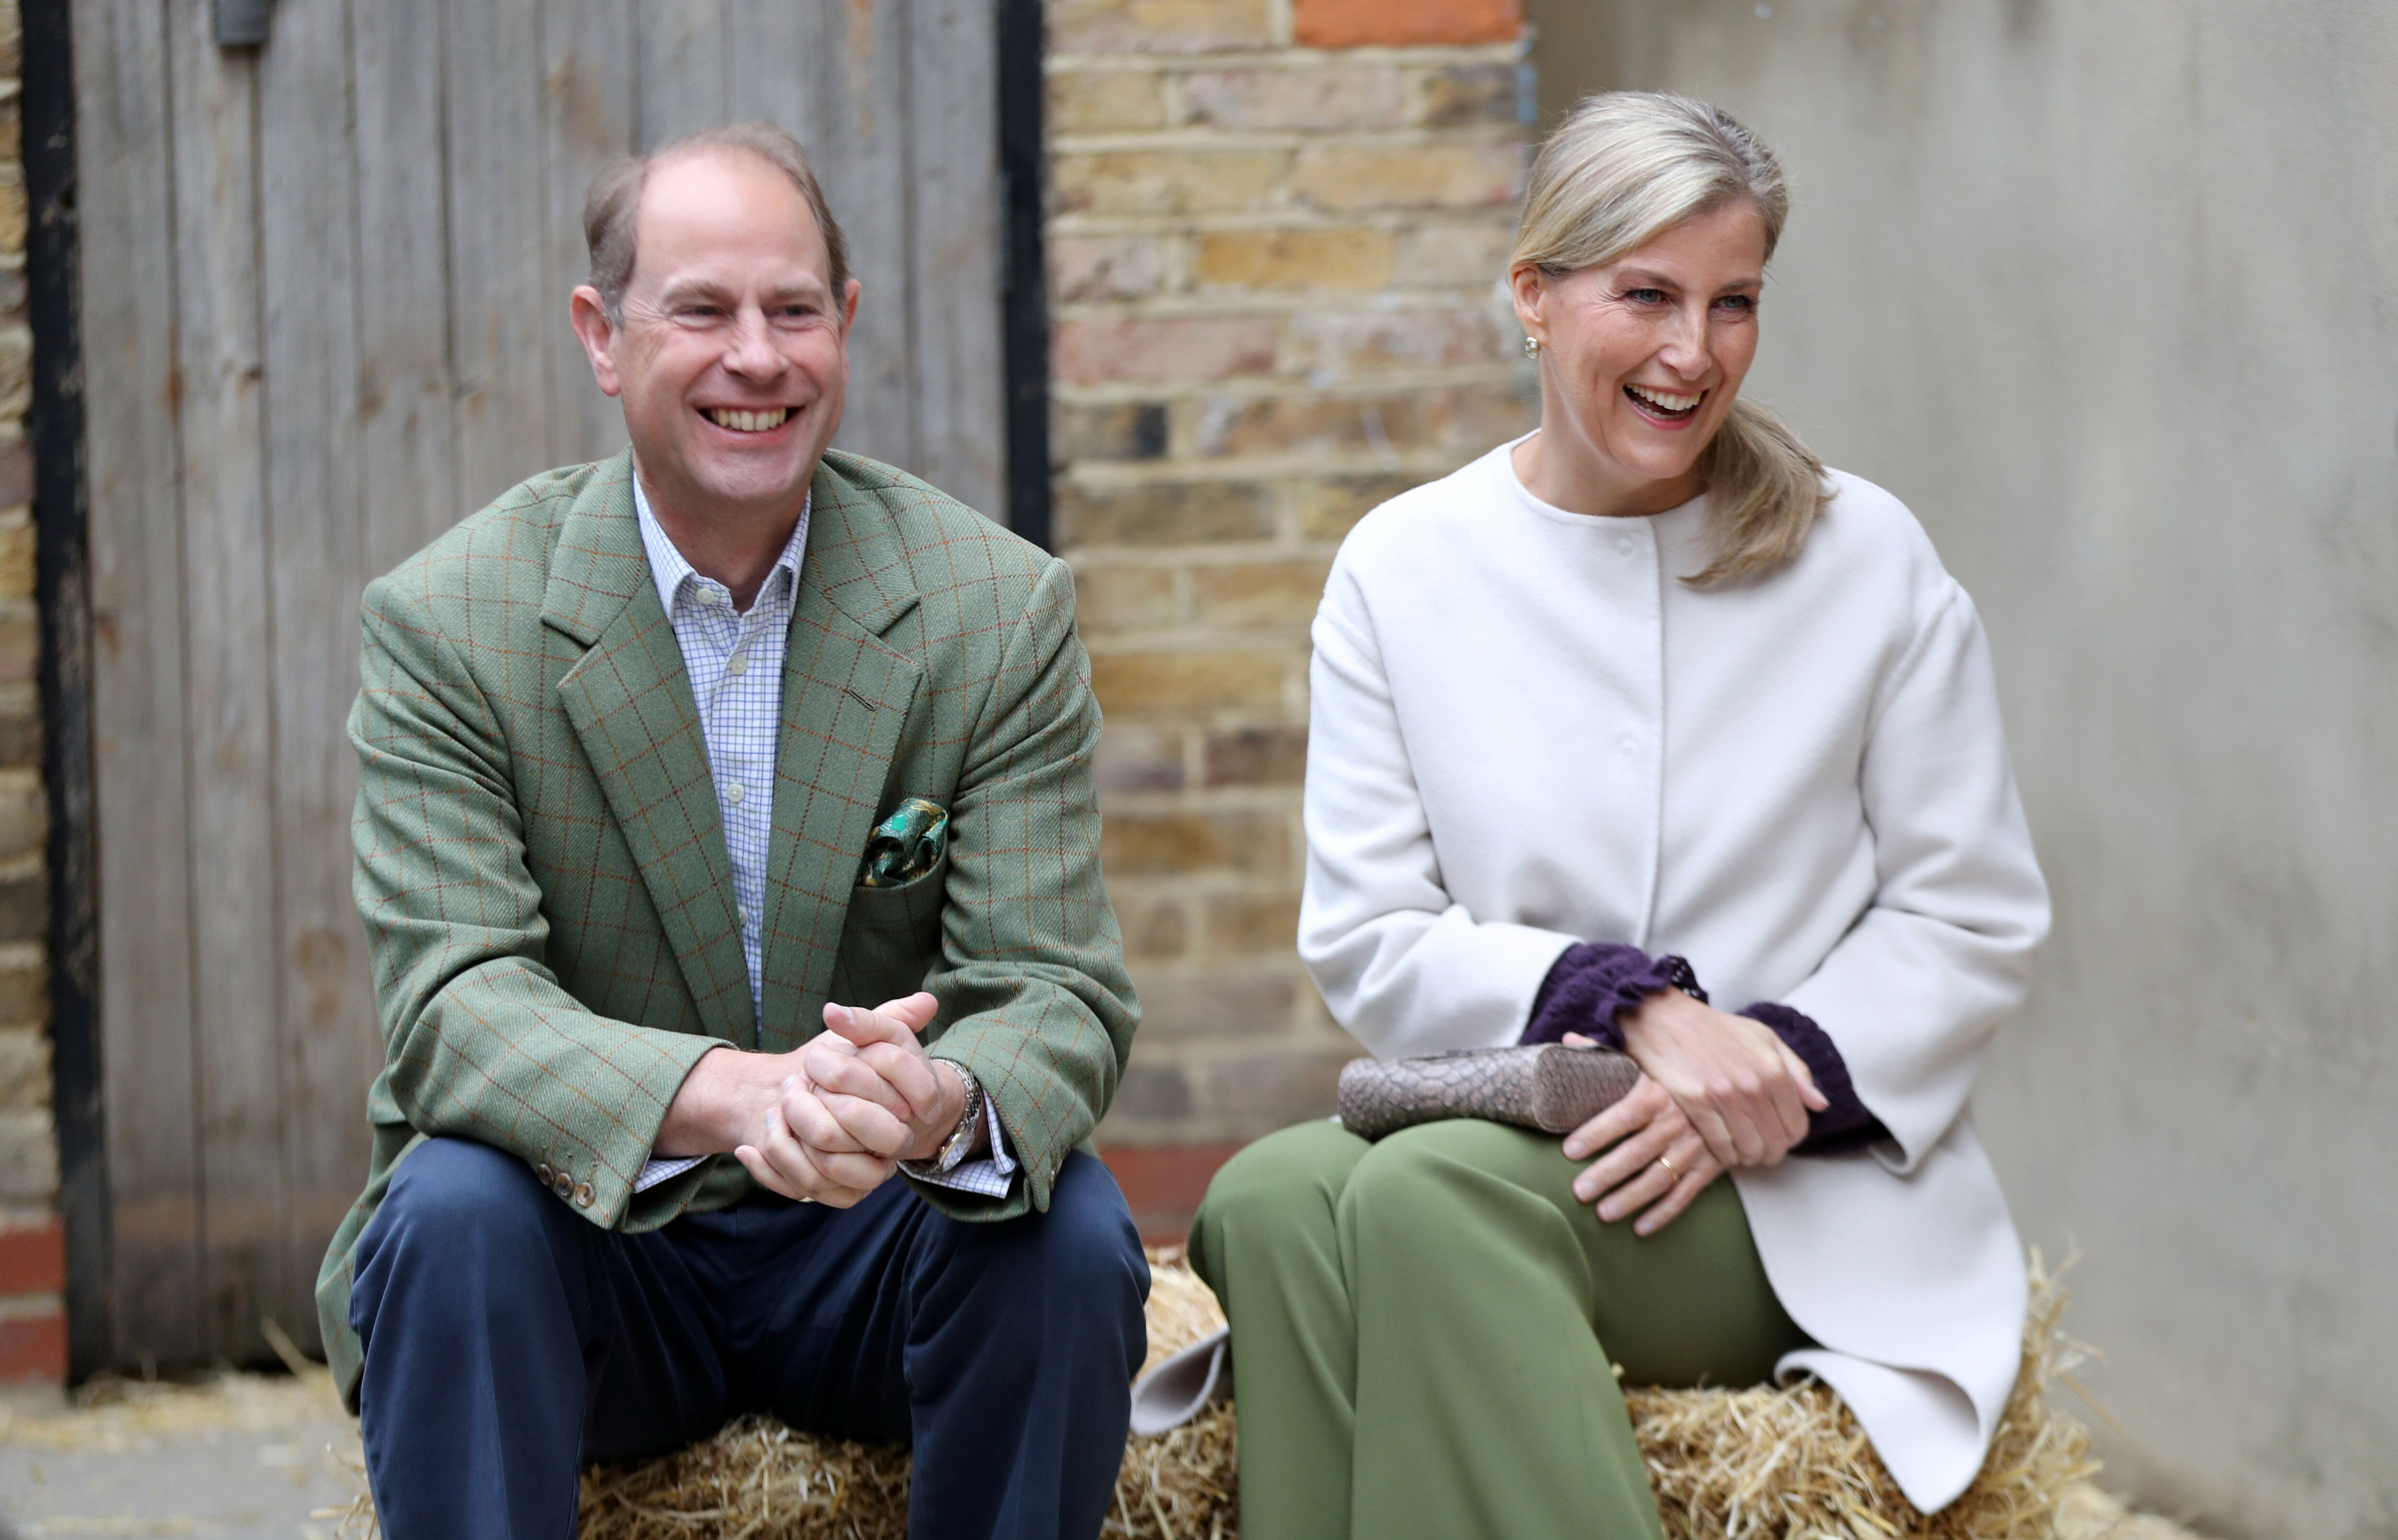 Prince Edward and Sophie, Countess of Wessex smile during a visit to see Vauxhall City Farm's community engagement and educat